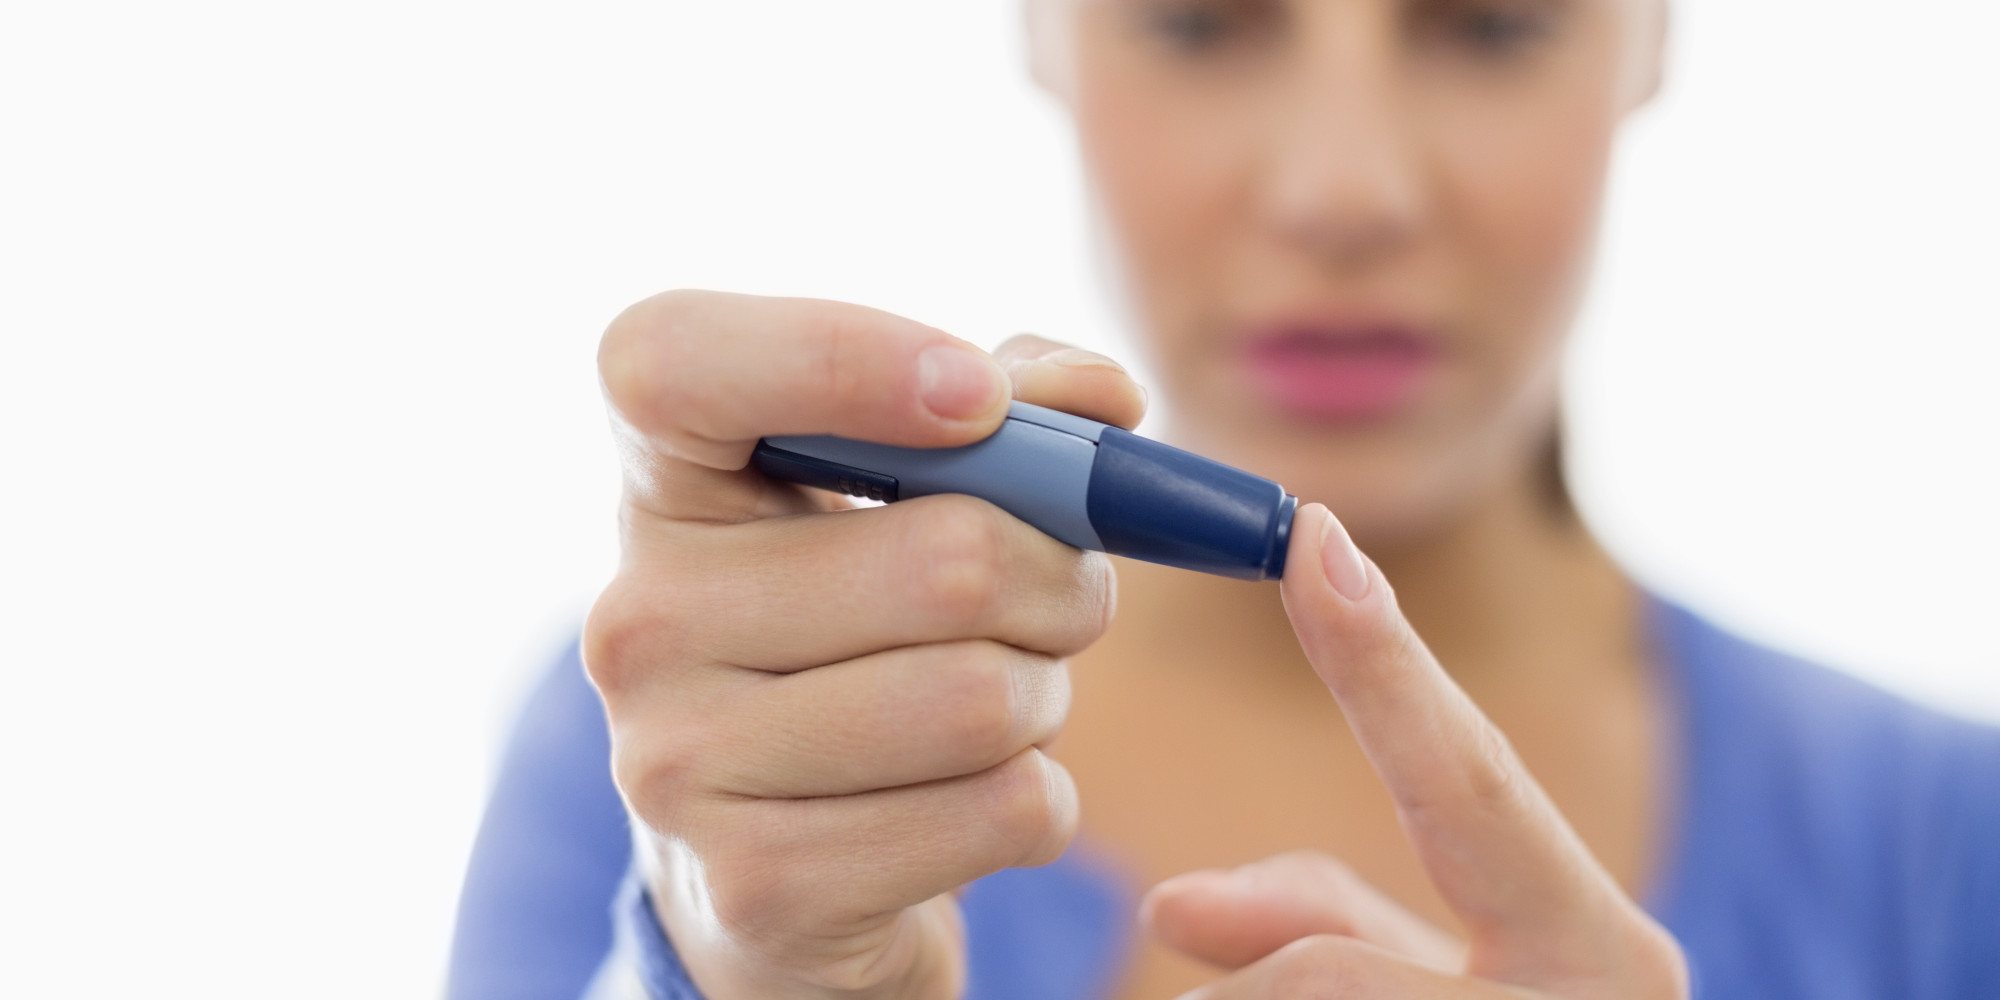 Diabetes prikken zelfmanagement